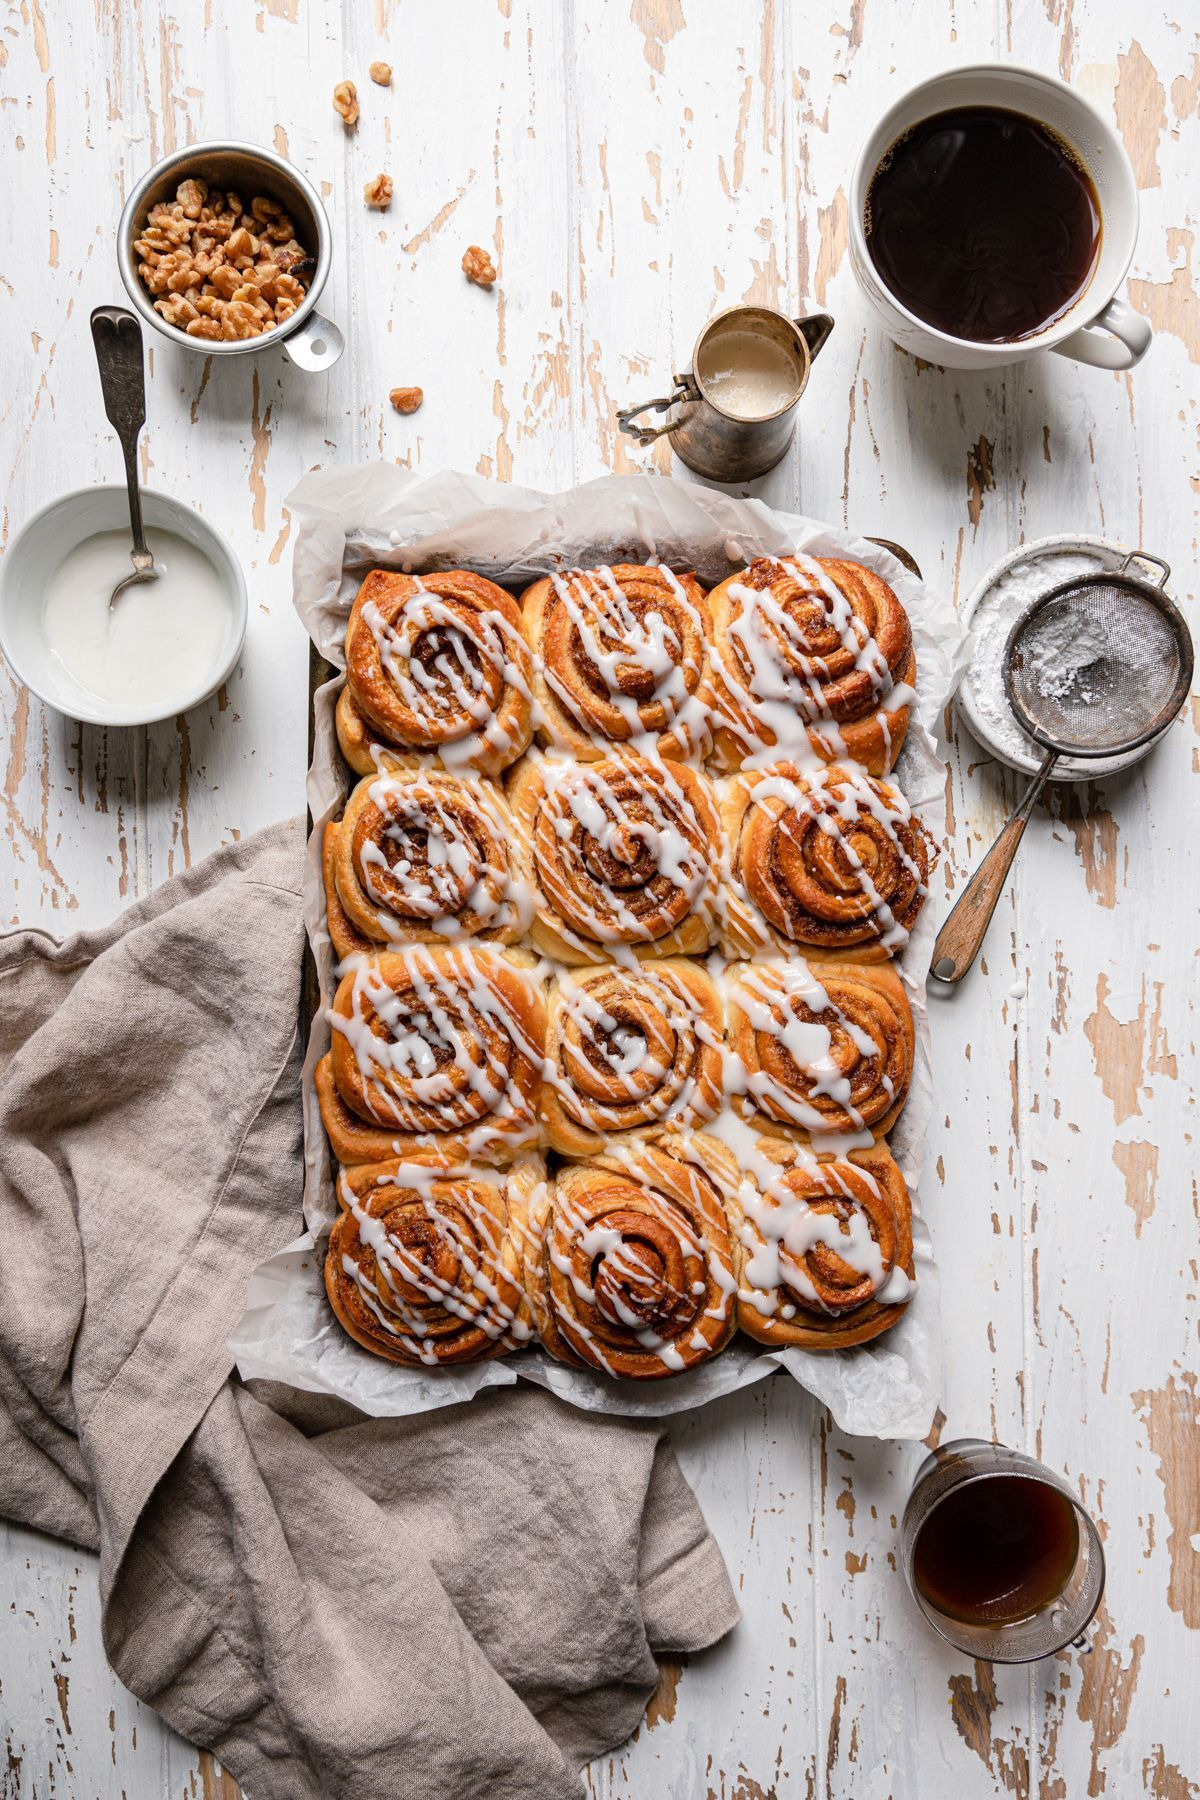 These bakery-style Cinnamon Rolls are fluffy, tender, and the kind of pastry that makes you smack your tough and mouth without even noticing. And yes, the sticky brown sugar cinnamon filling will absolutely fill your home with a warm comforting aroma.  #cinnamonrollsrecipe #bakerycinnamonrolls #easycinnamonrolls #homemadecinnamonrolls #baking #cinnamonrollsphotography #foodphotography #howtomakecinnamonrolls #cinnamonpastry #brunchrecipe #breakfastrecipe #breakfastidea #breakfastpastry 